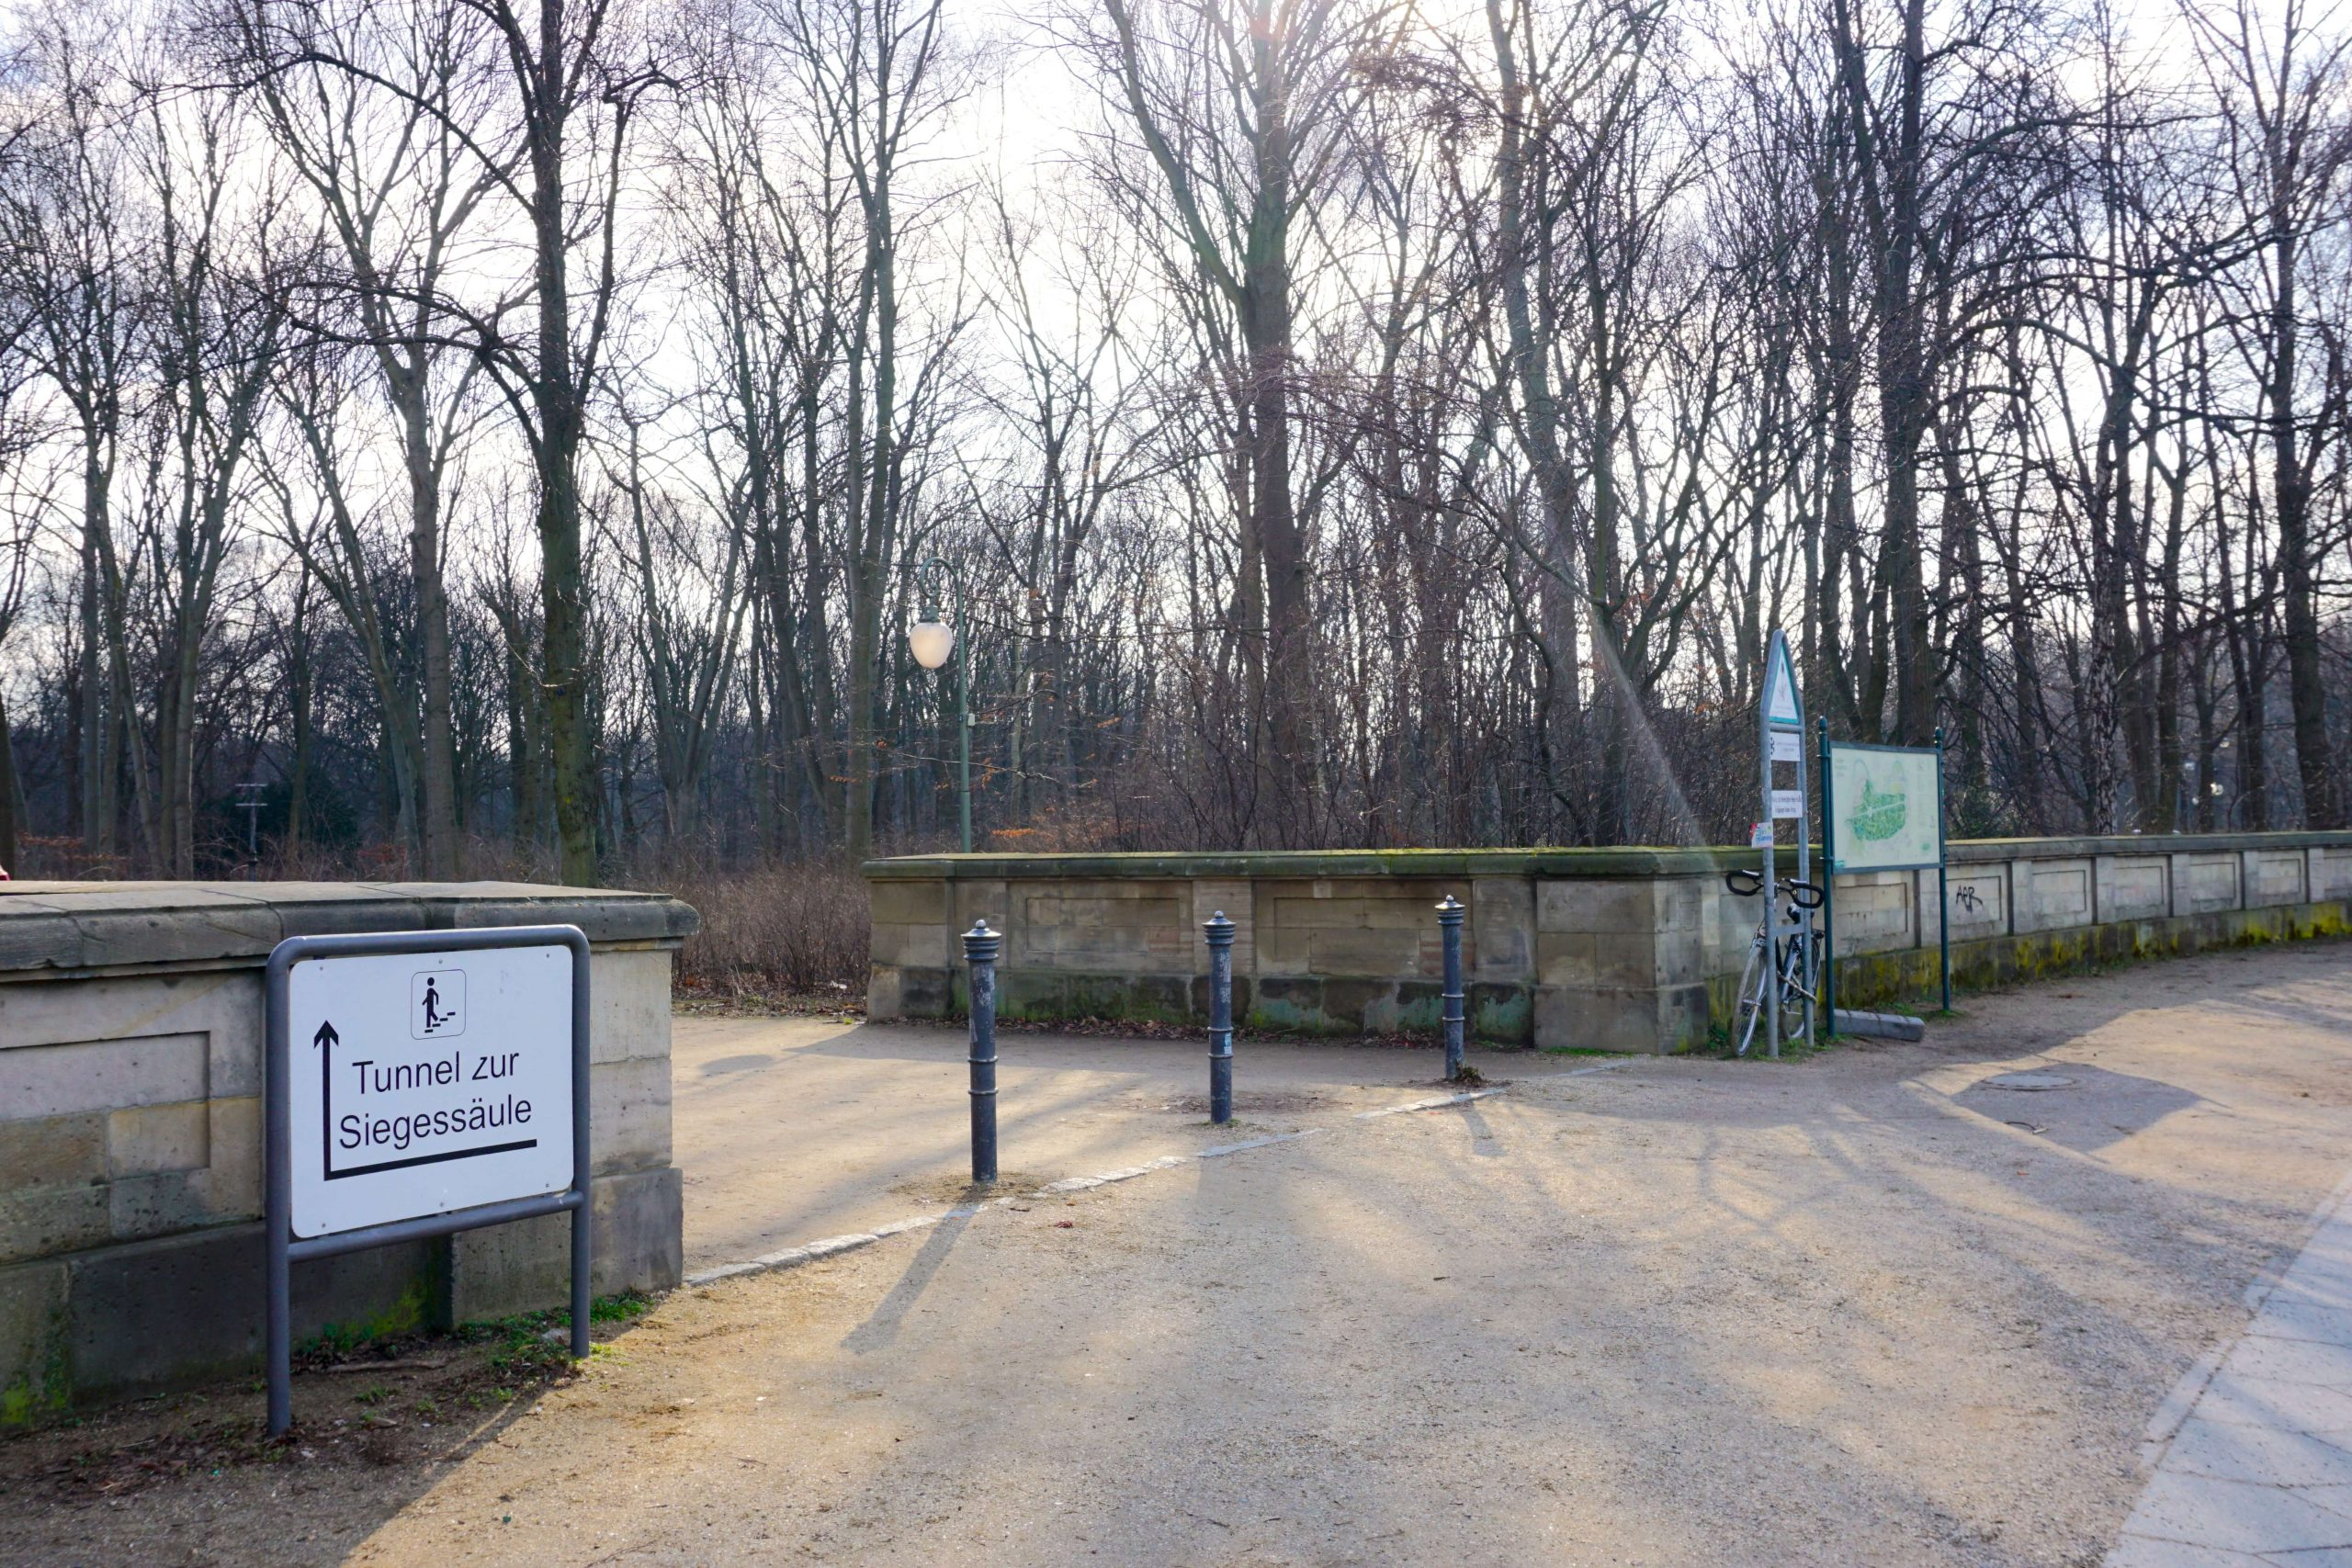 The park entrance to take to find the Stand By Me Tree in Berlin